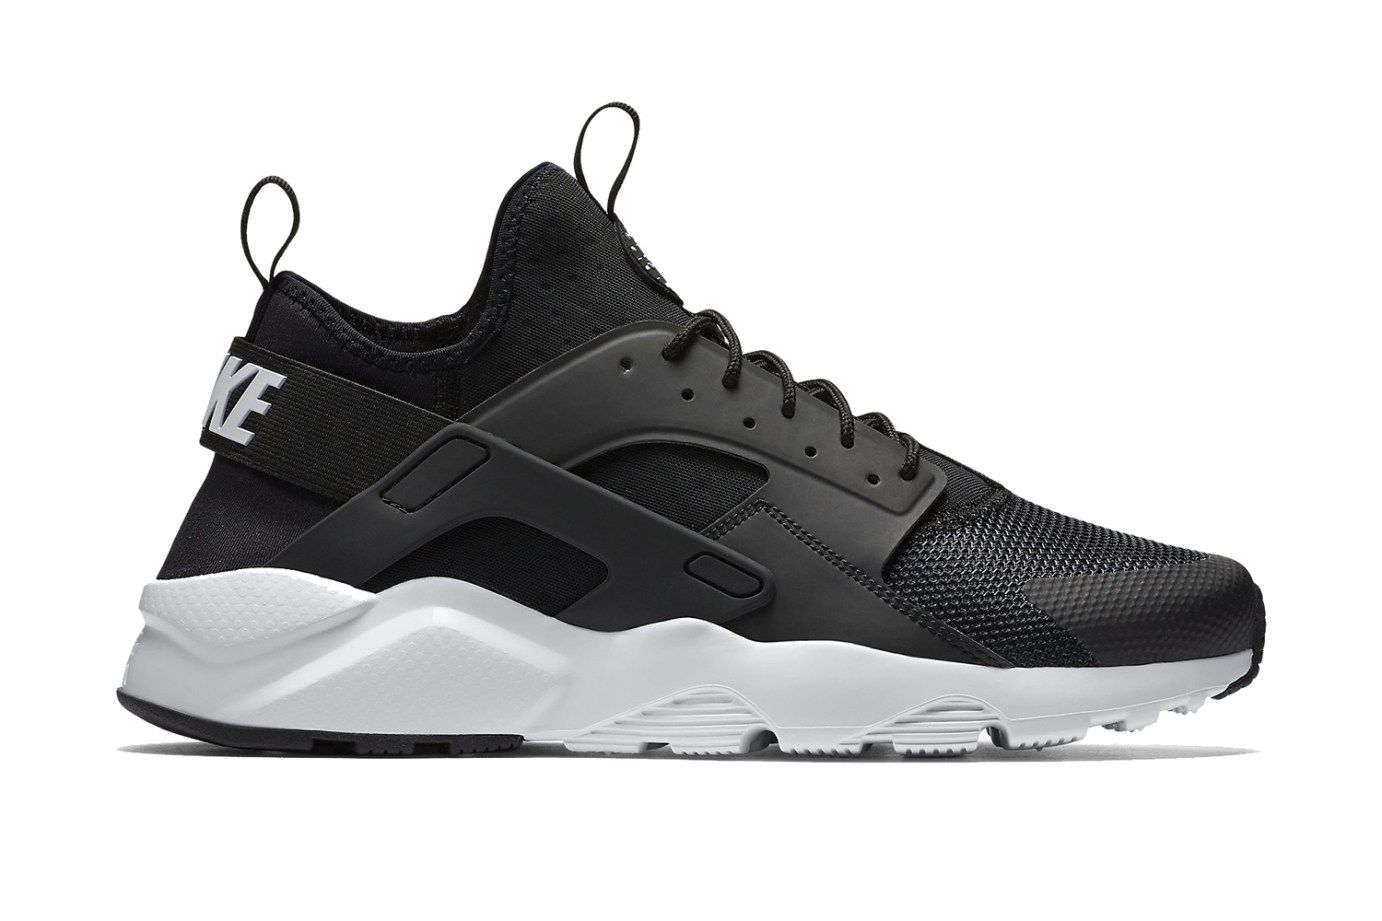 Nike Introduces a Men's Version of the Air Huarache Ultra | Nike ...